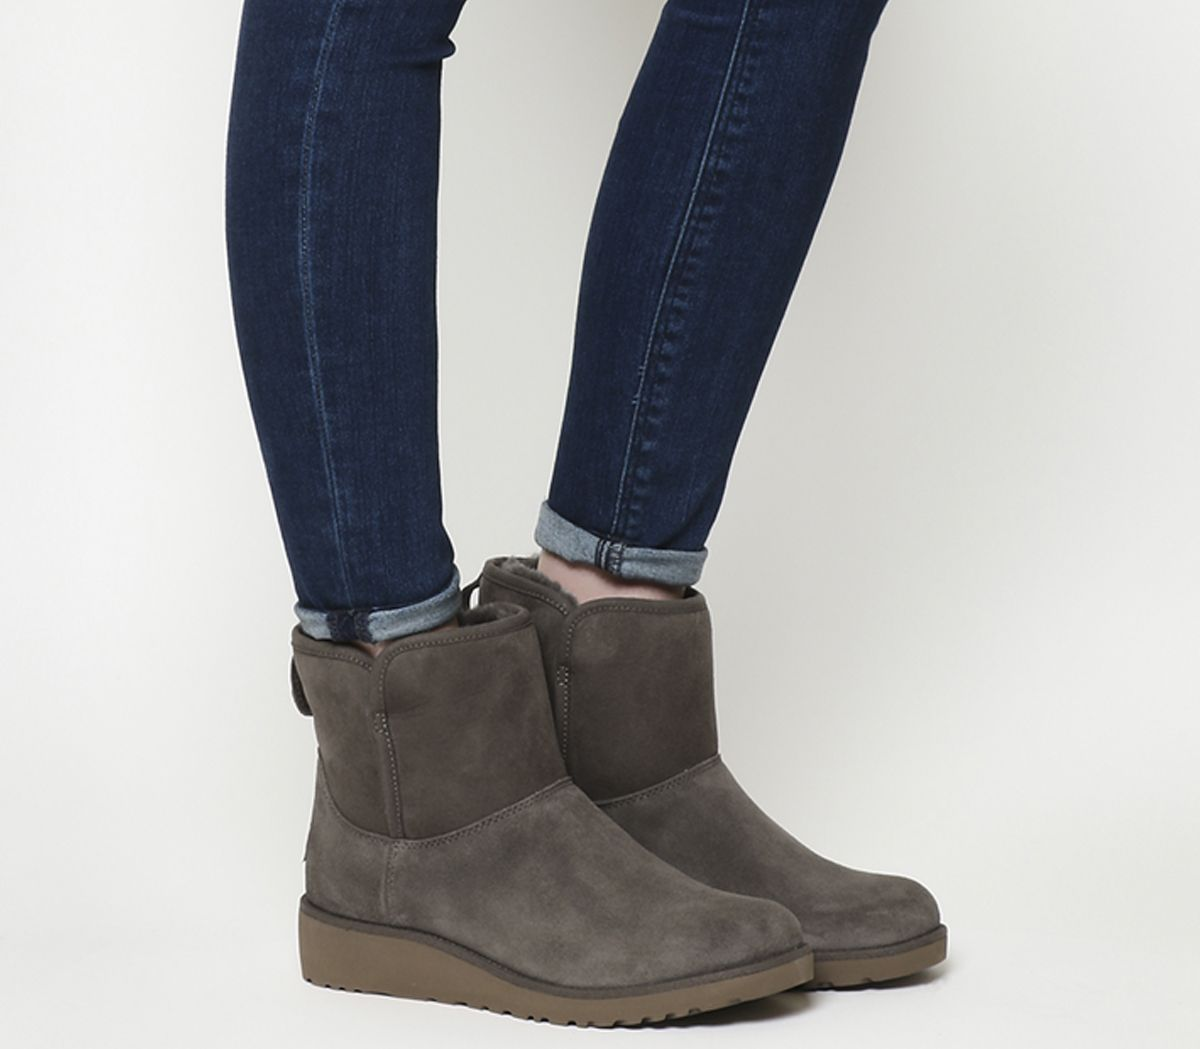 5d753a768 UGG Classic Slim Kristin Mini Boots Slate Suede - Ankle Boots